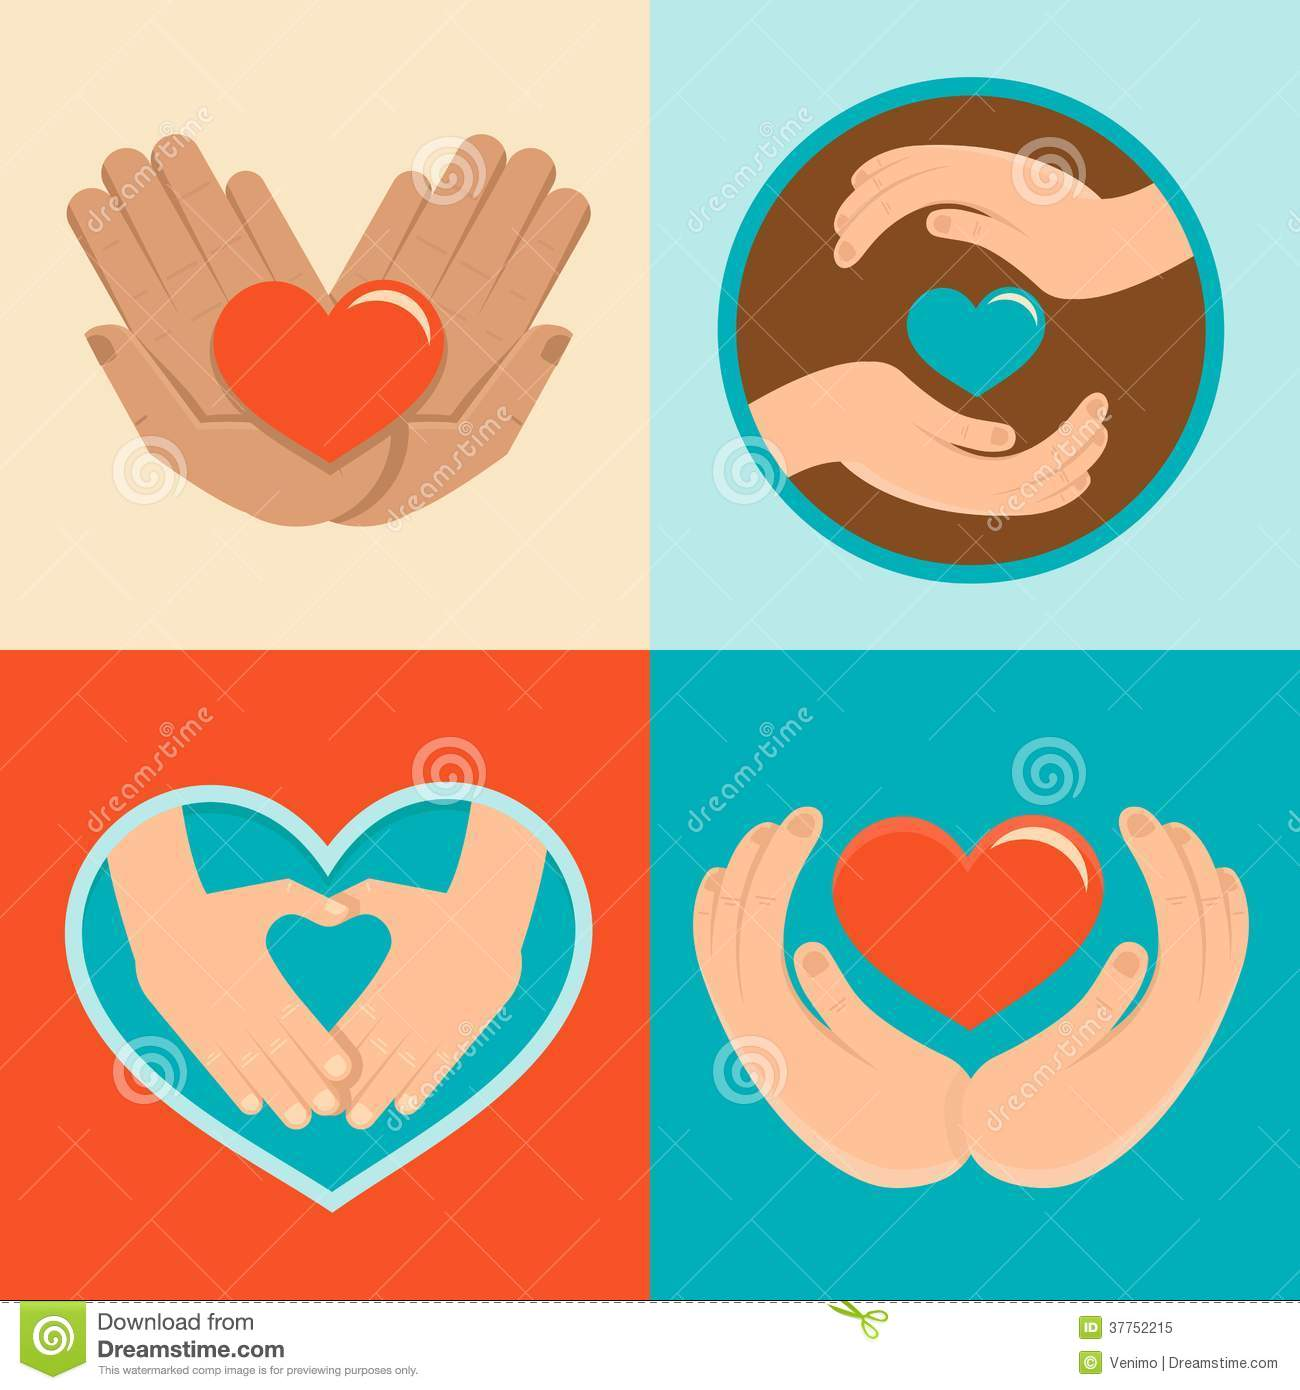 Symbol for volunteering gallery symbol and sign ideas charity and volunteer signs in flat style stock vector image charity and volunteer signs in flat biocorpaavc